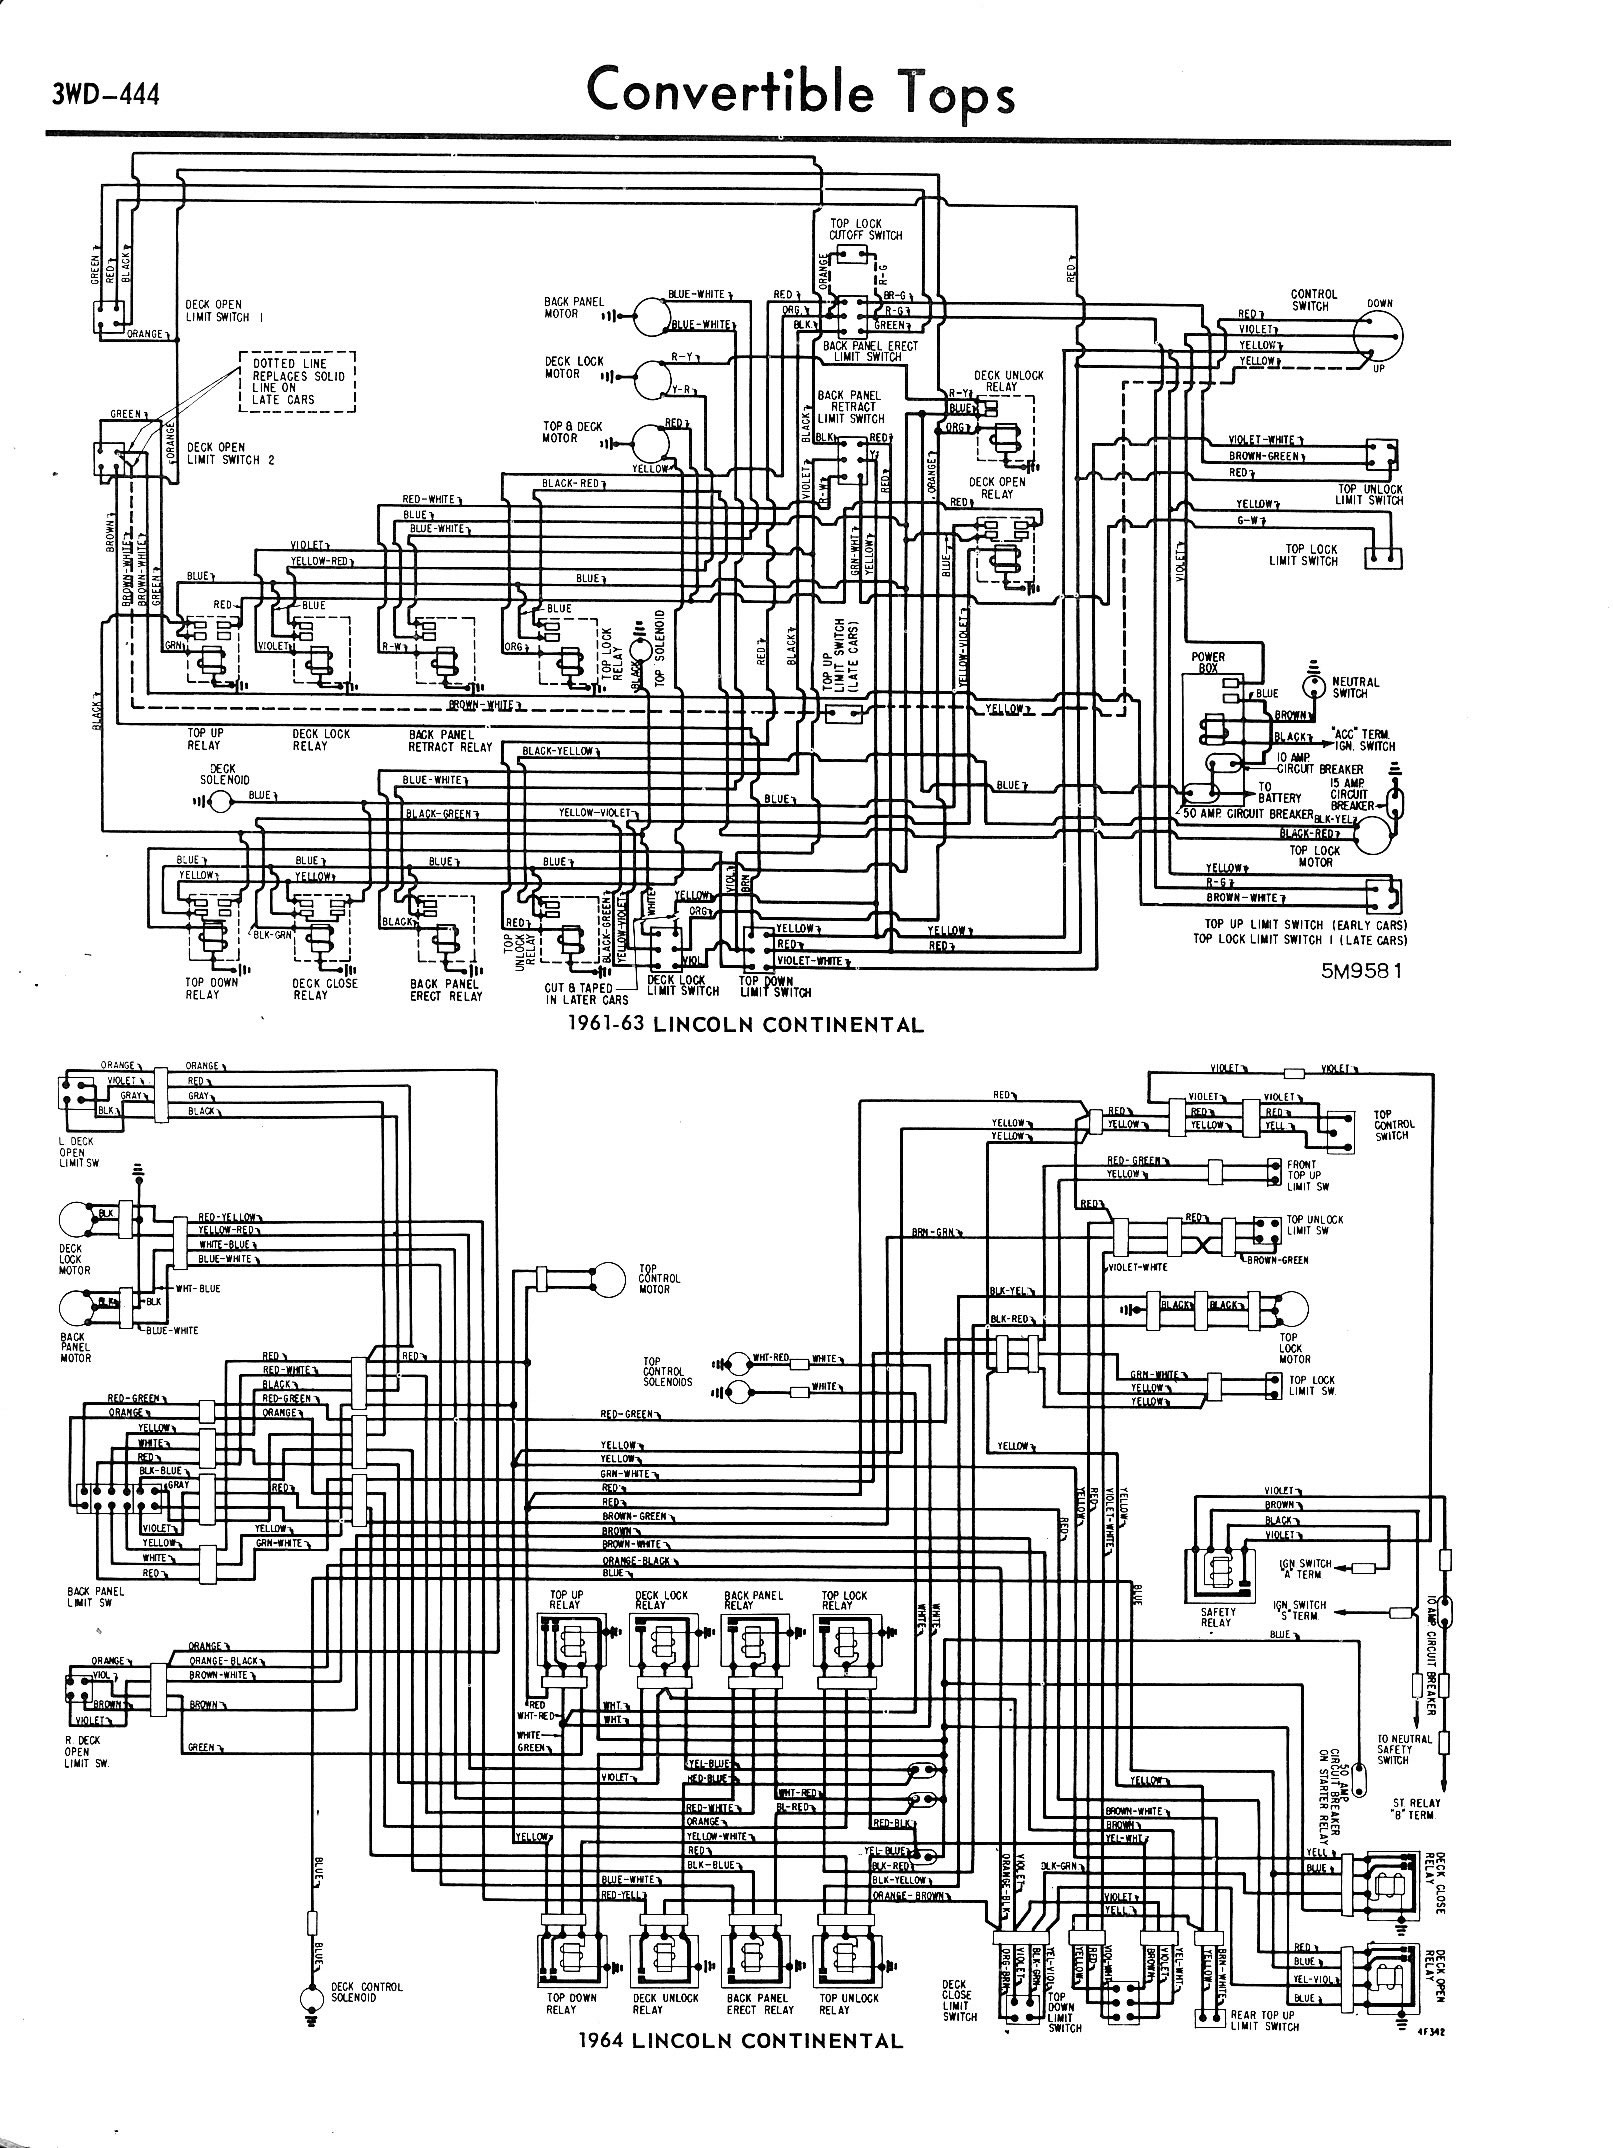 1984 Lincoln Continental Wiring Diagram Content Resource Of Wiring 1966  Mustang Wiring Diagram 1966 Lincoln Wiring Diagram